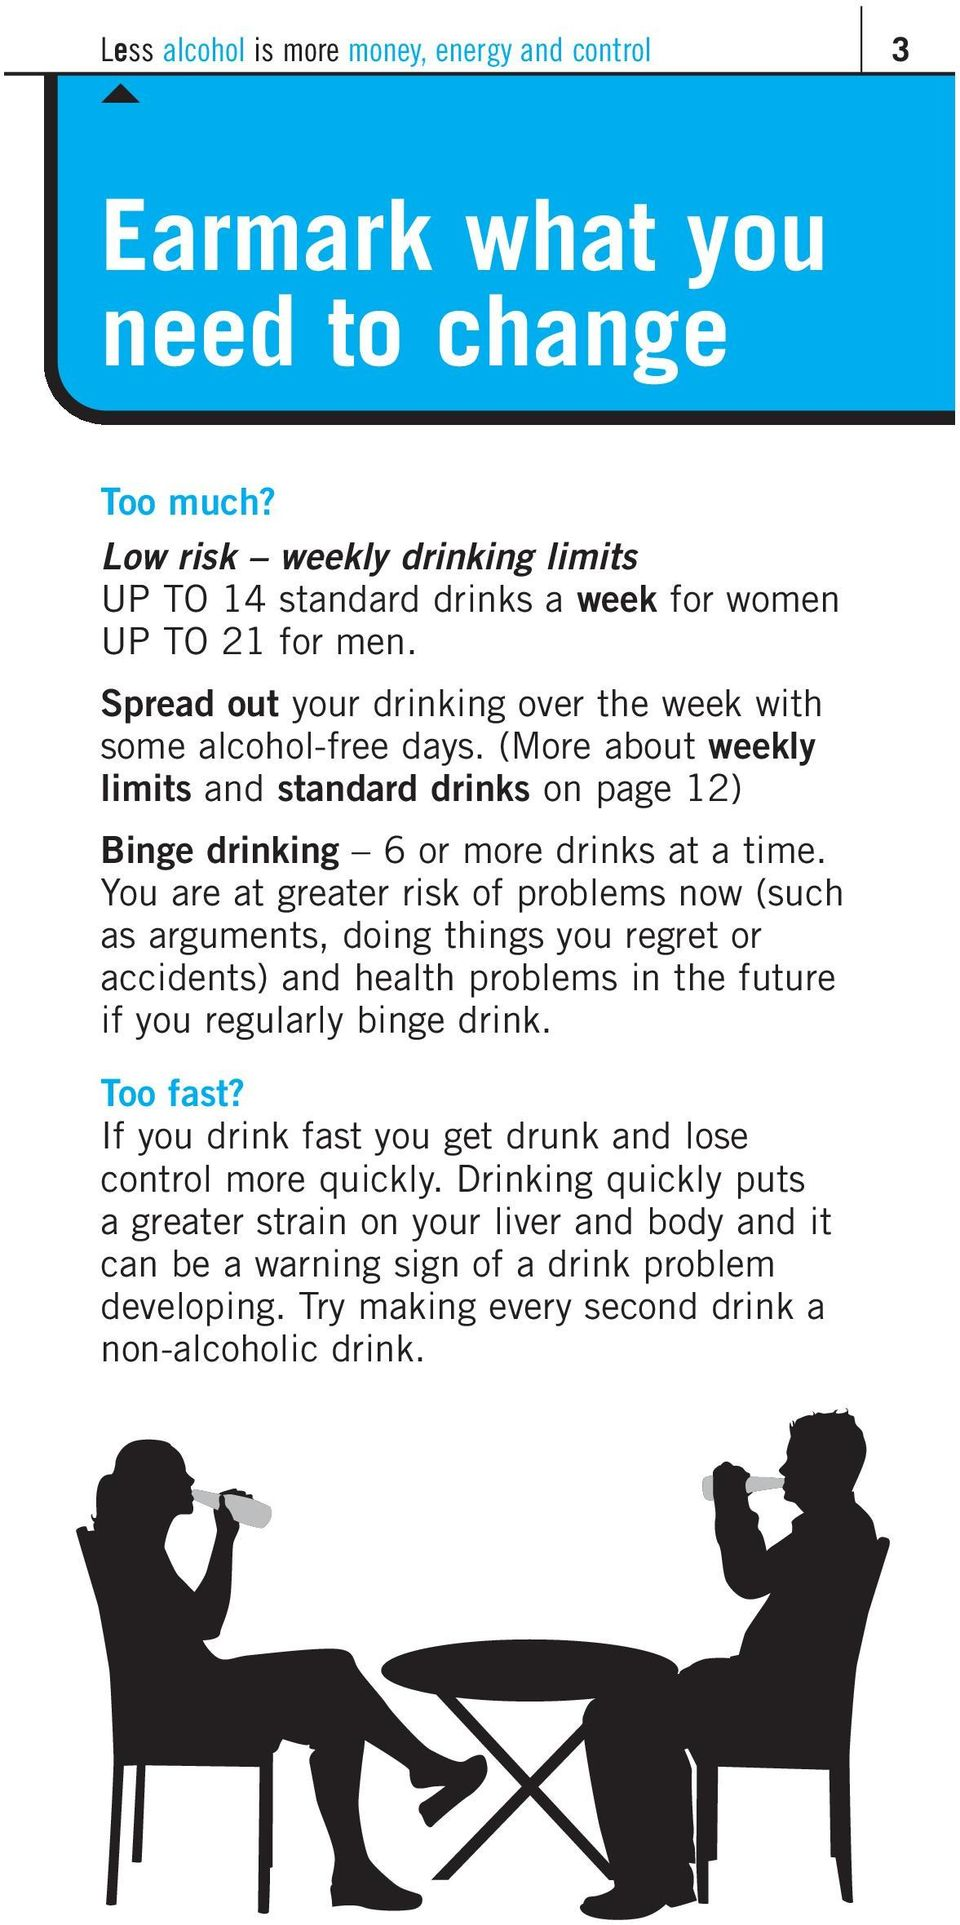 You are at greater risk of problems now (such as arguments, doing things you regret or accidents) and health problems in the future if you regularly binge drink. Too fast?